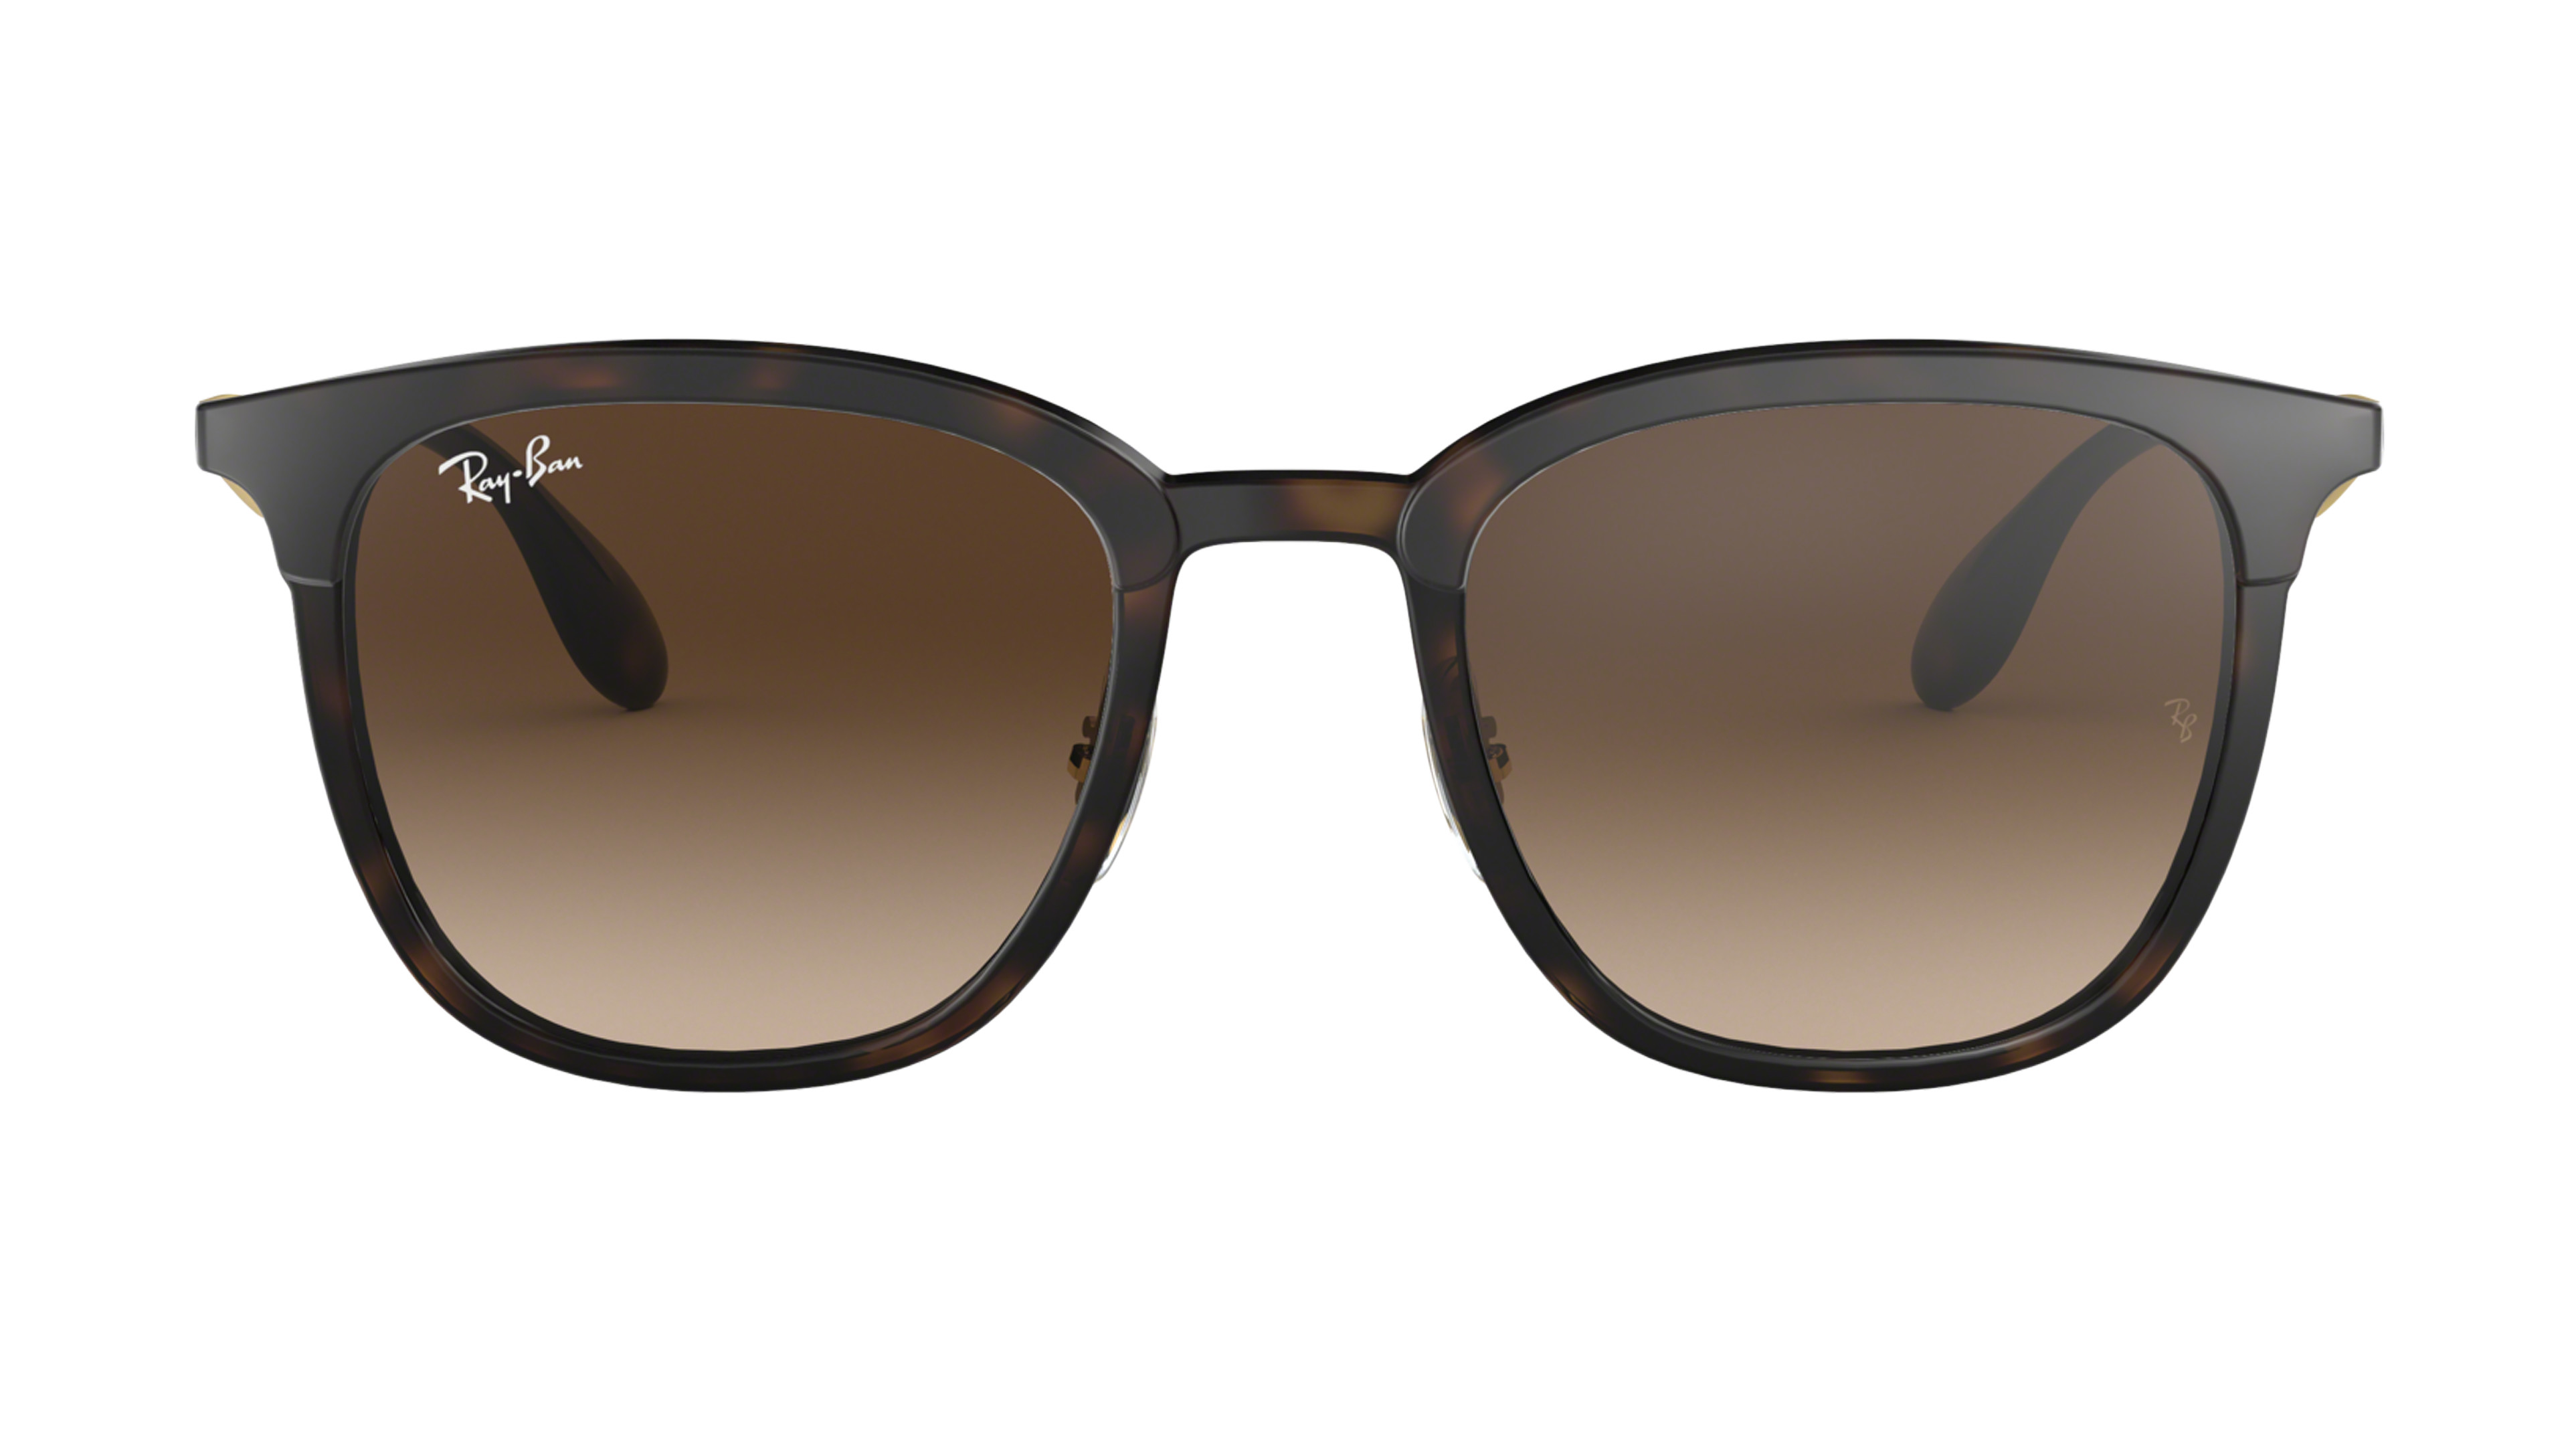 8053672730531-front-Ray-Ban-Sonnenbrille-0RB4278-628313